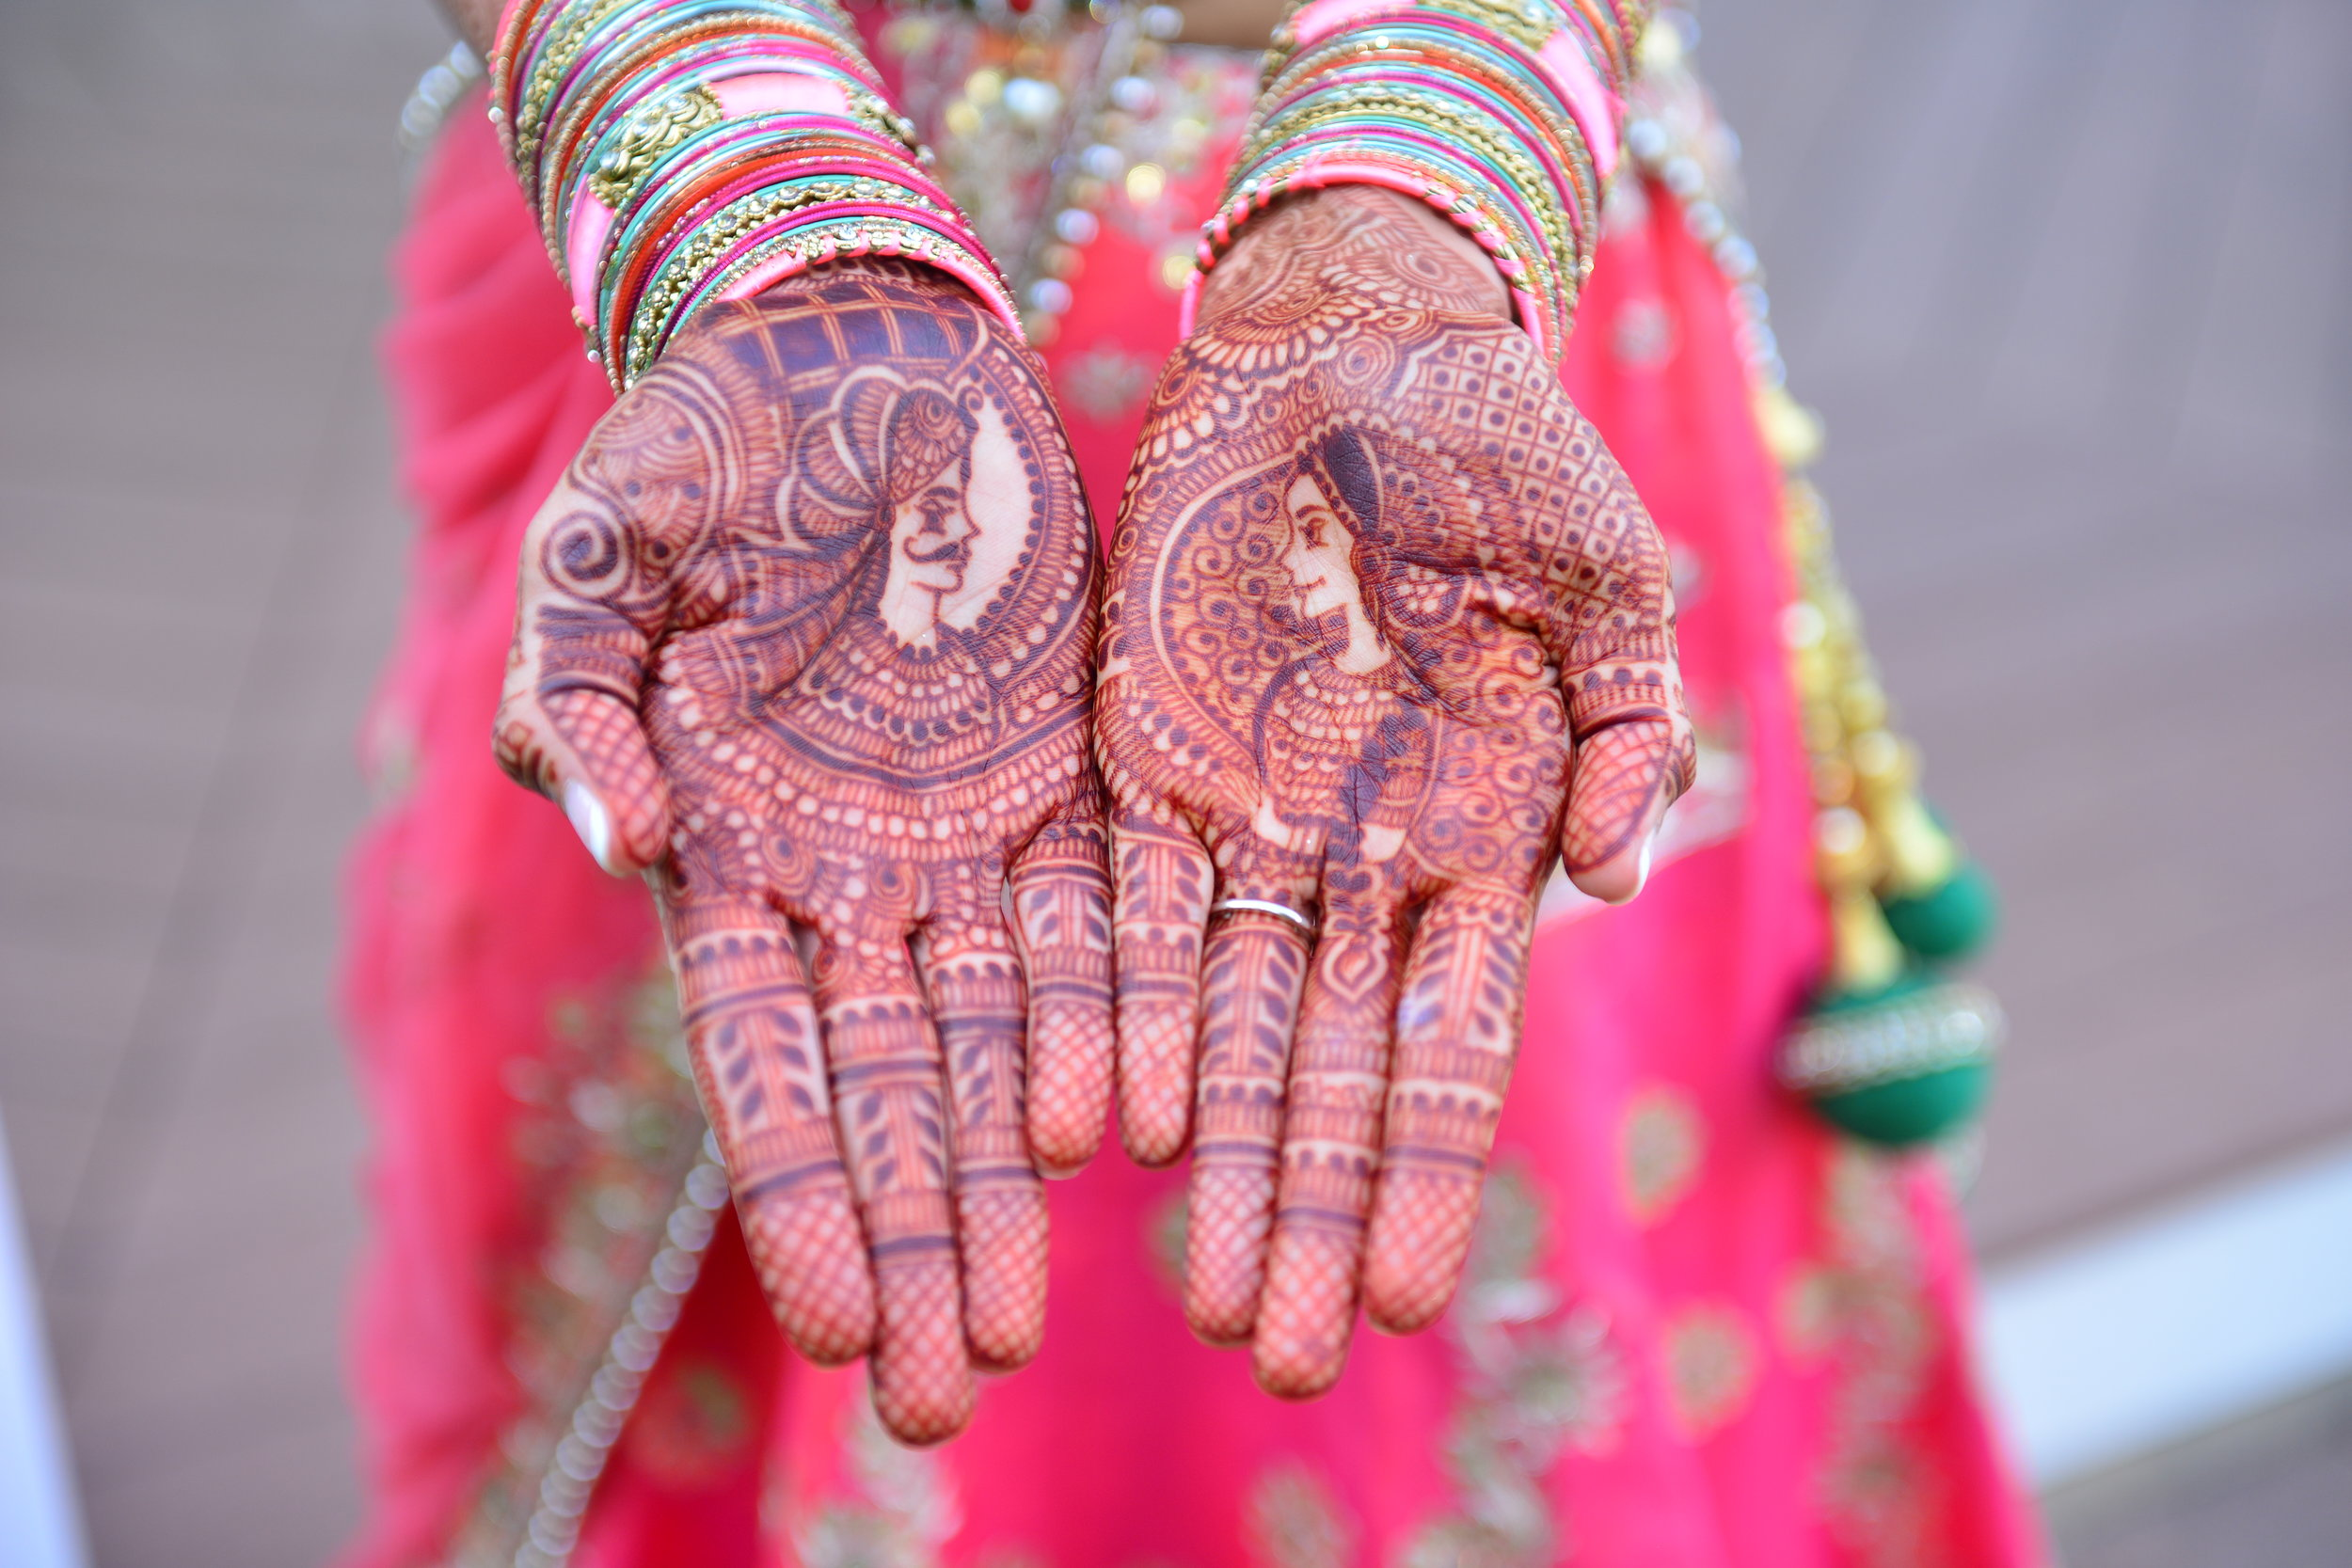 2.2.17 - It's a typical Indian tradition to hide the groom's name in the bride's henna...can you find this groom's name_ Hint- his name is Bhavin.jpg